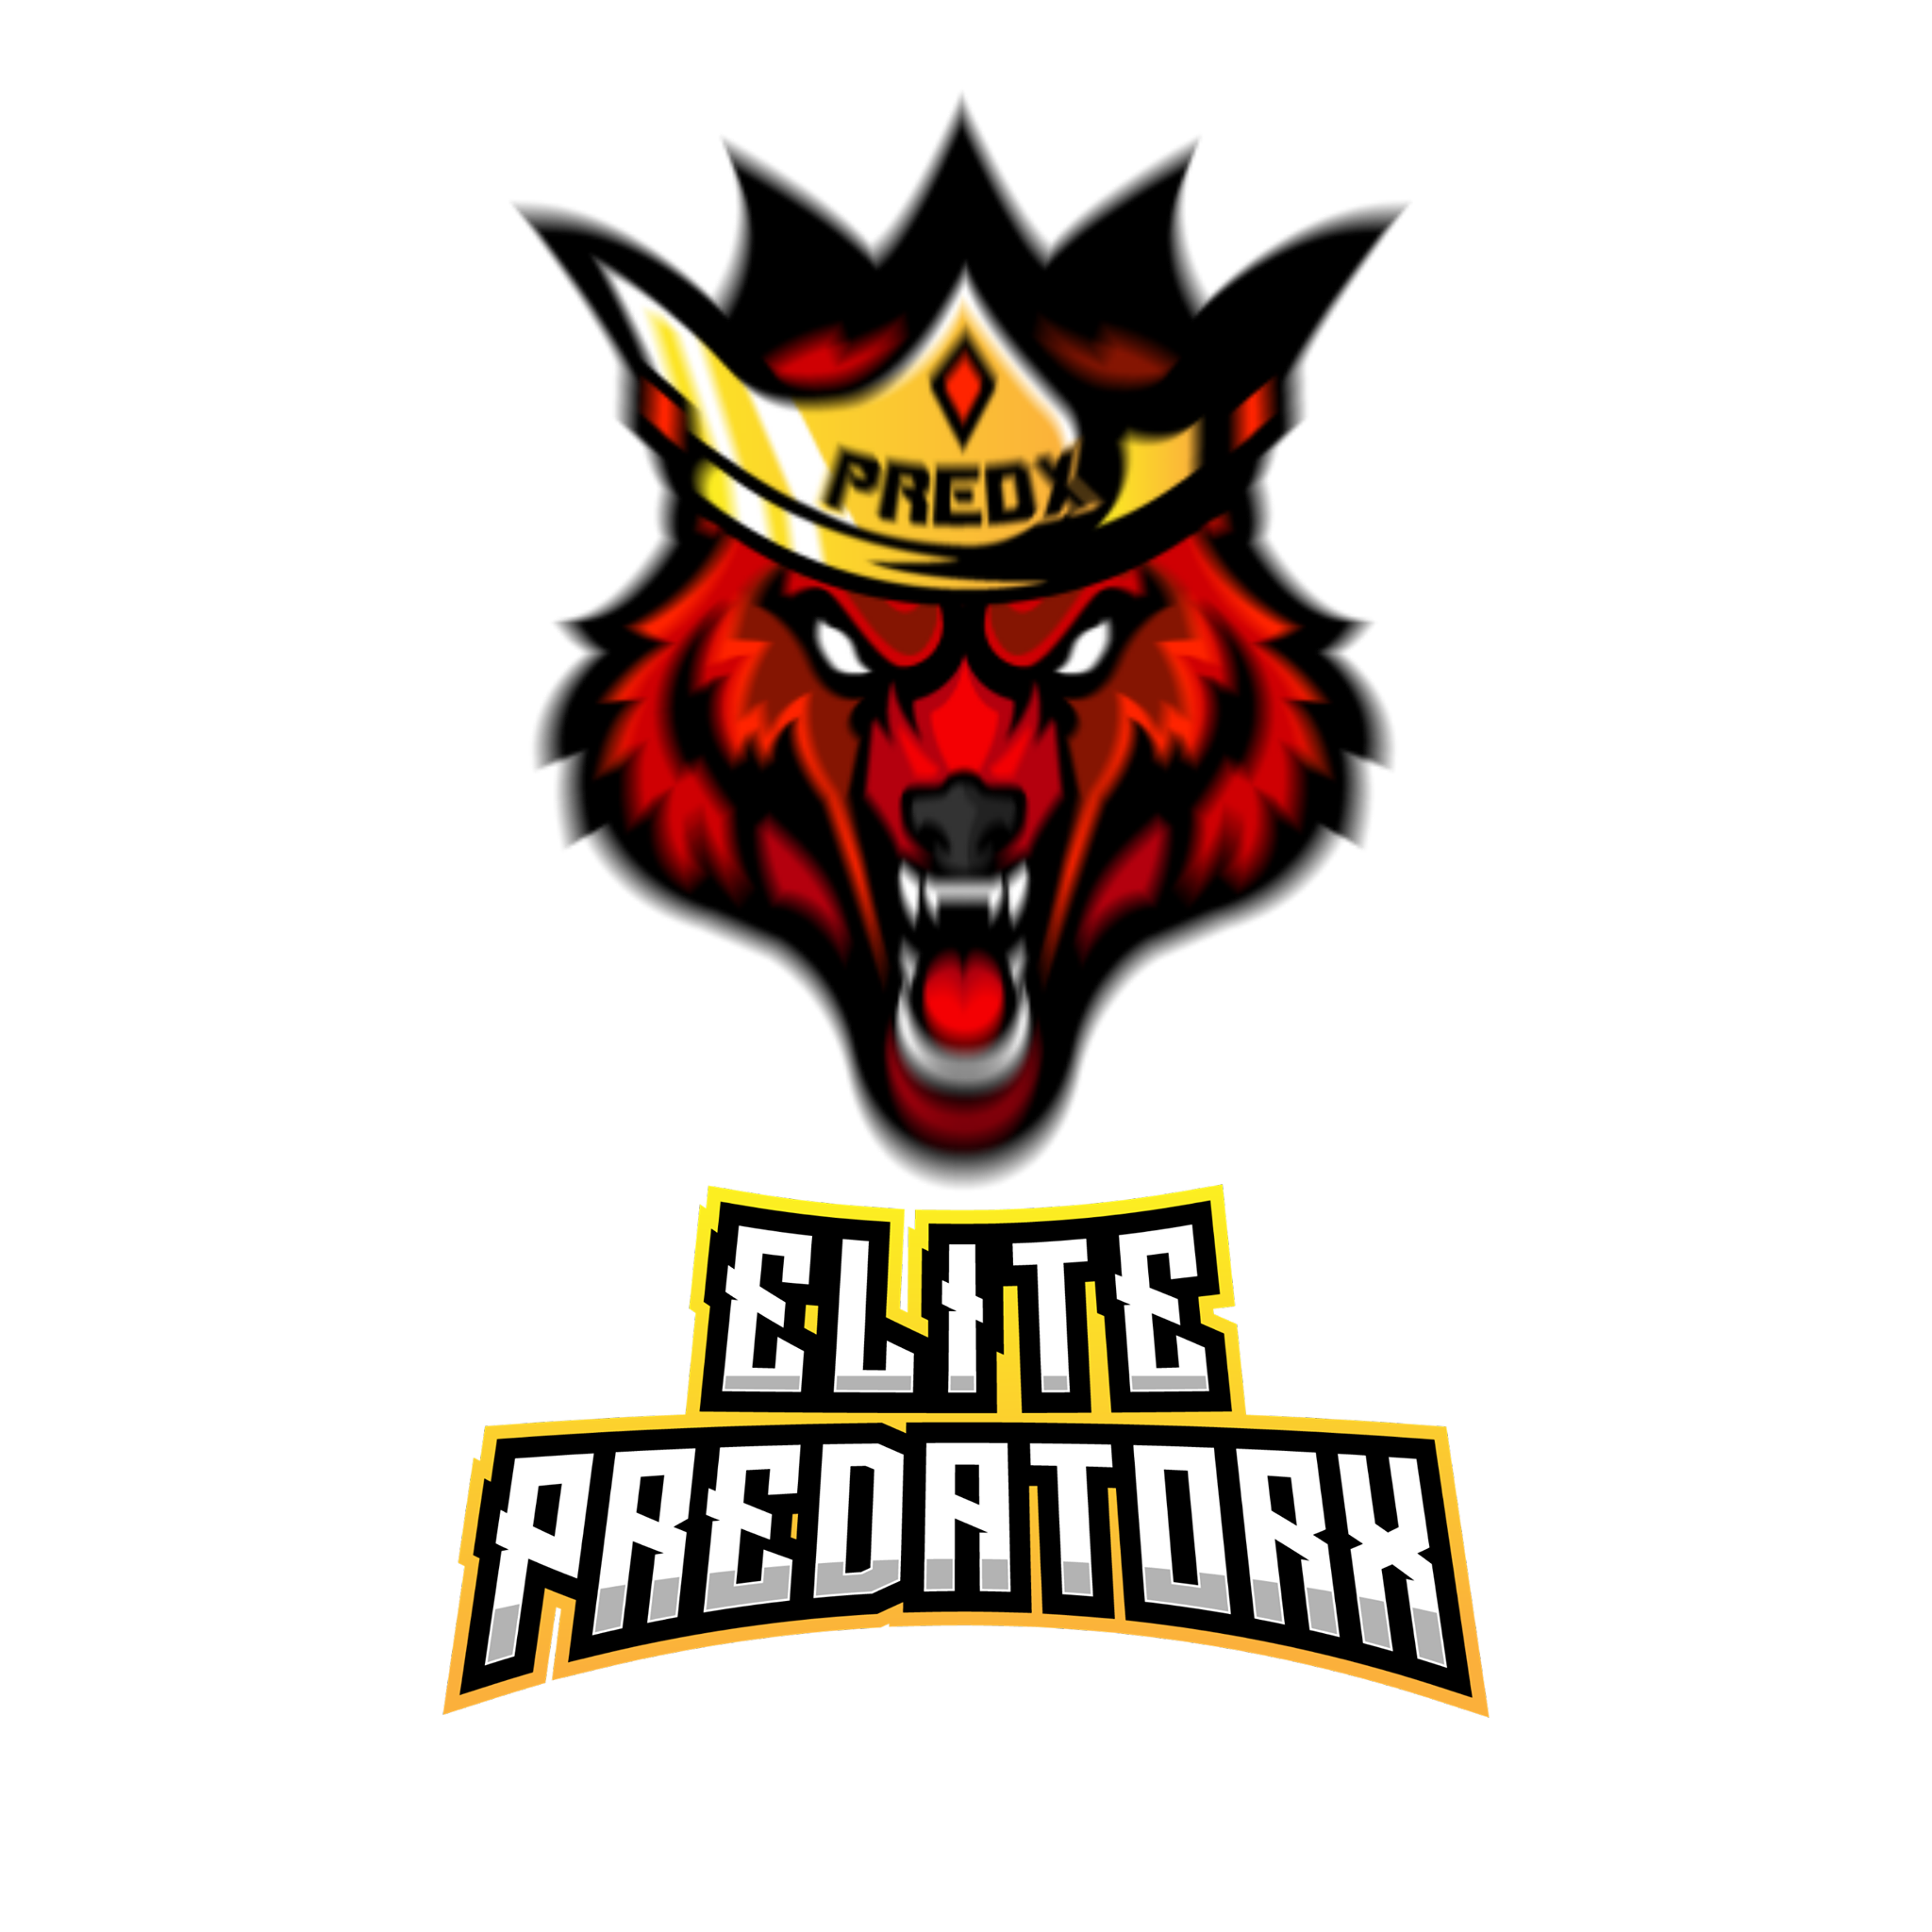 ElitePredatorX